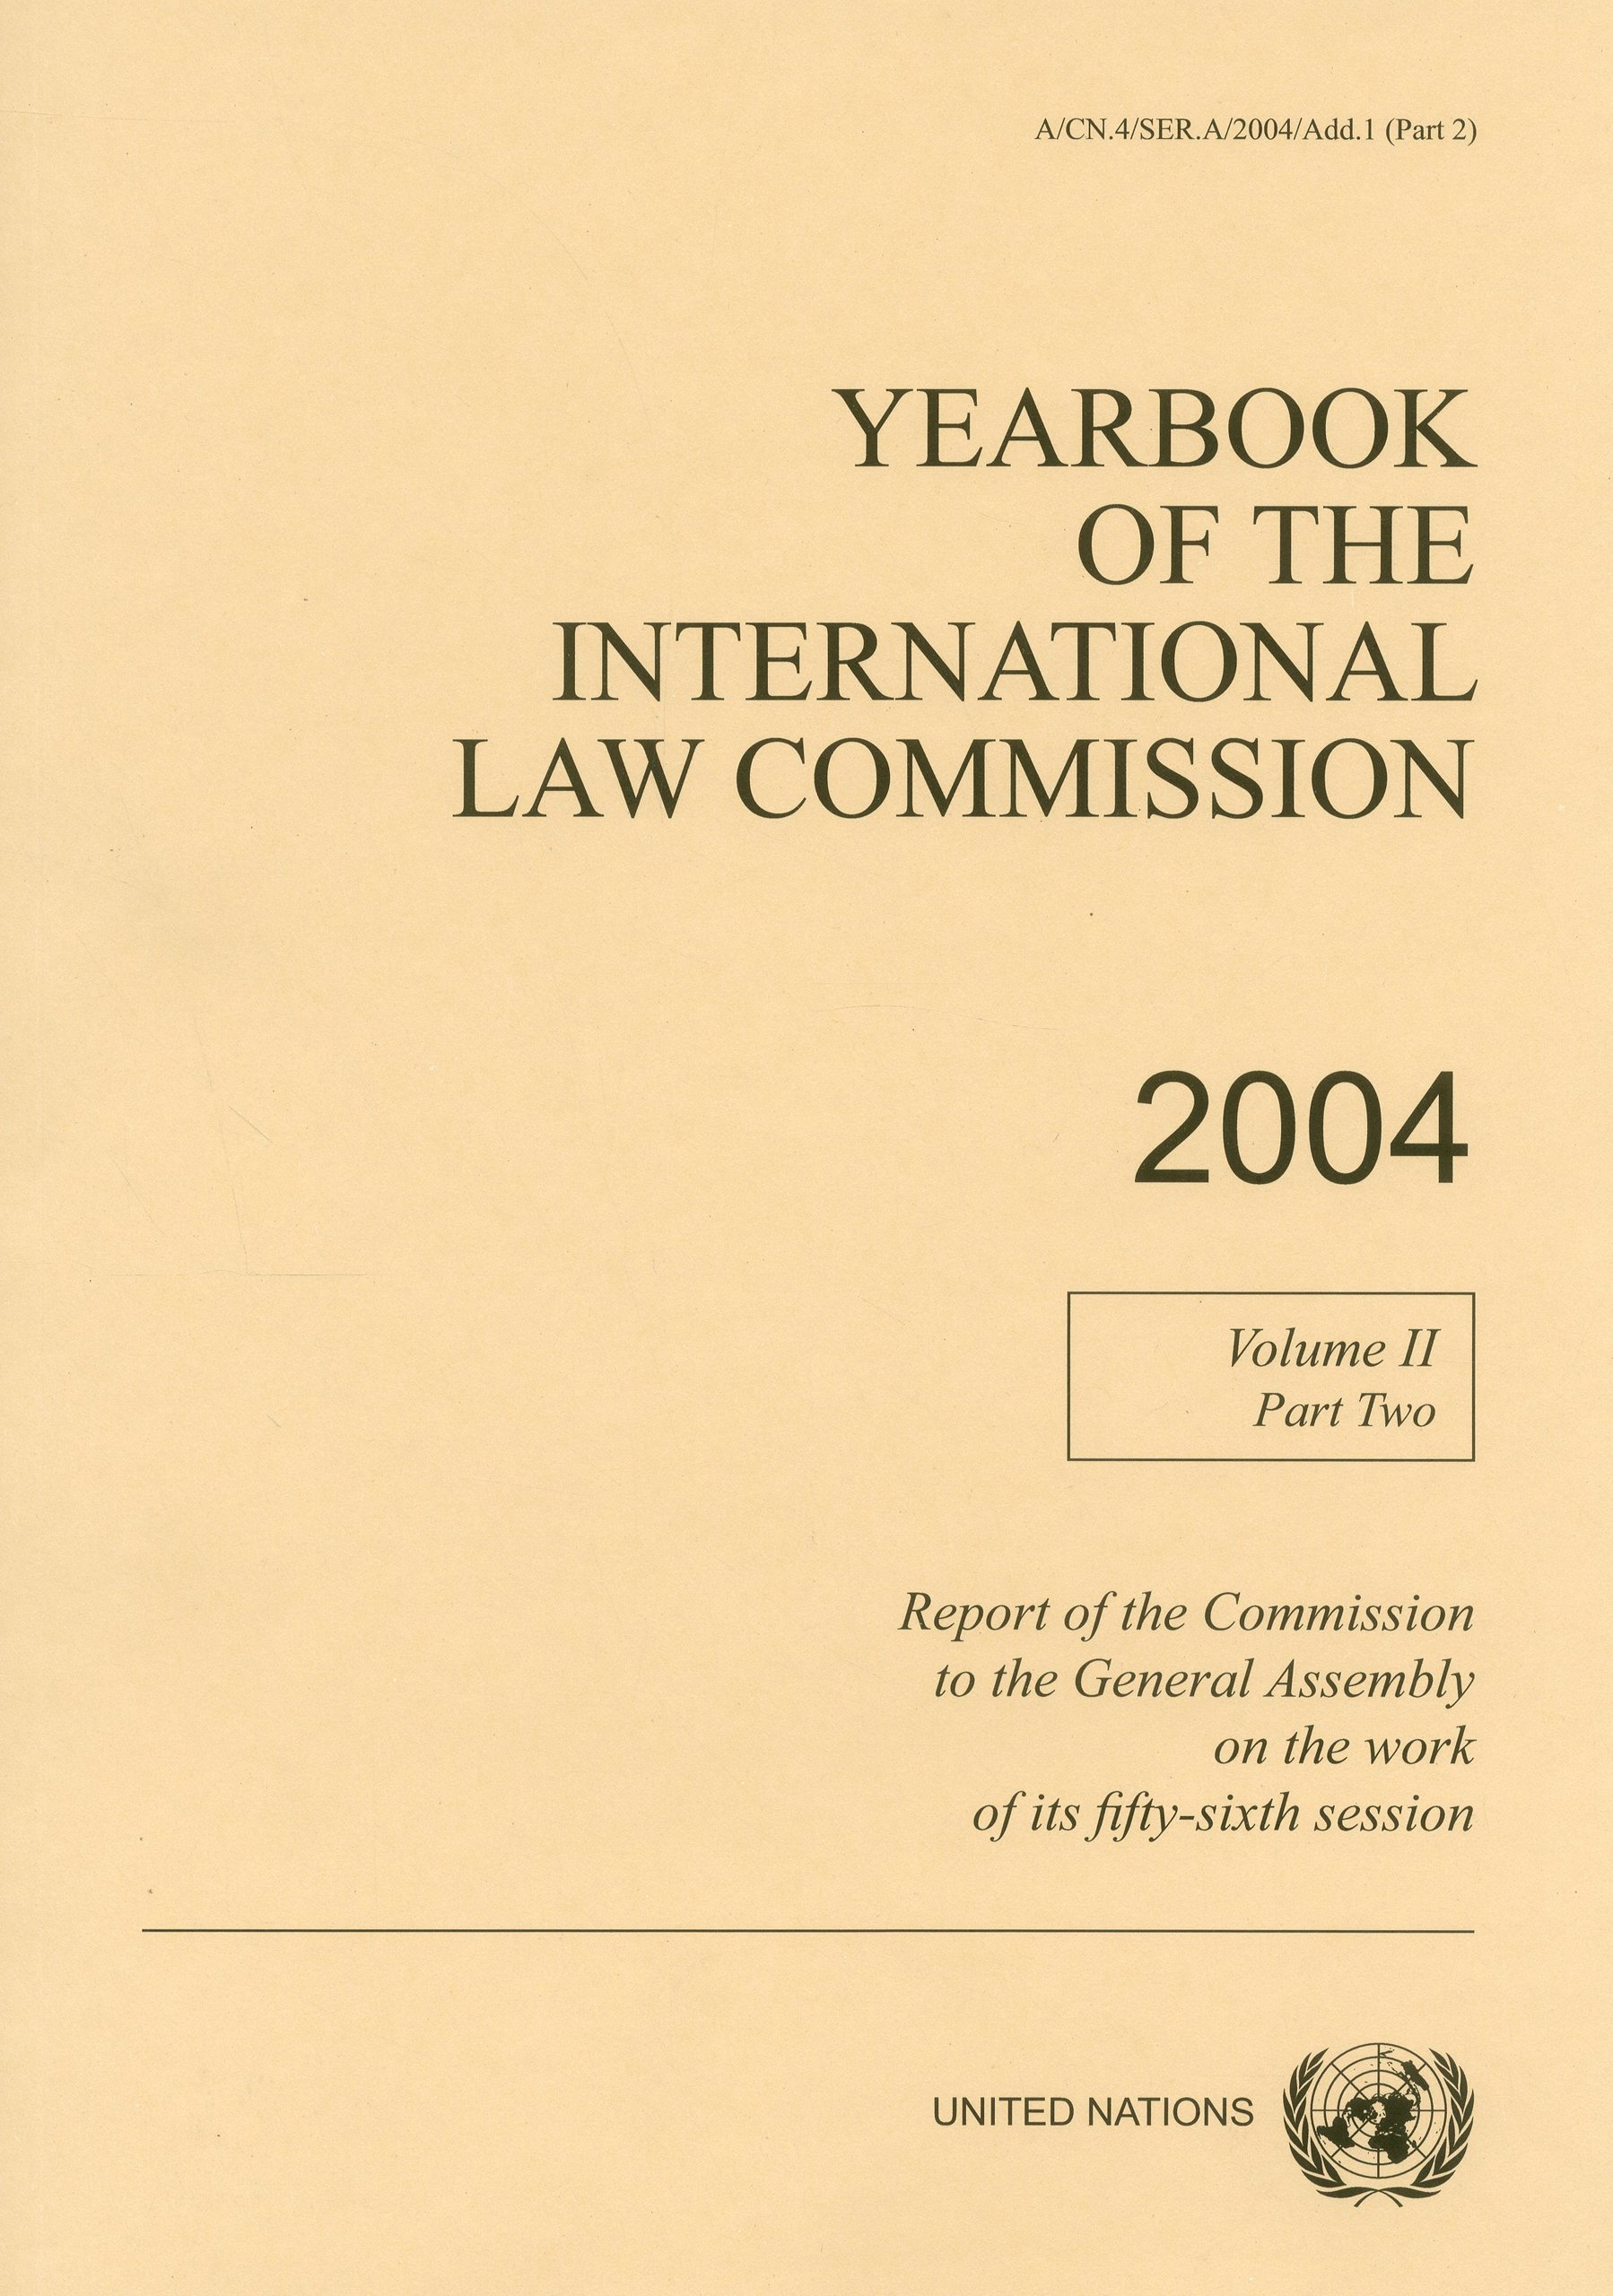 Yearbook of the International Law Commission 2004 (United Nations Office in Geneva) ebook